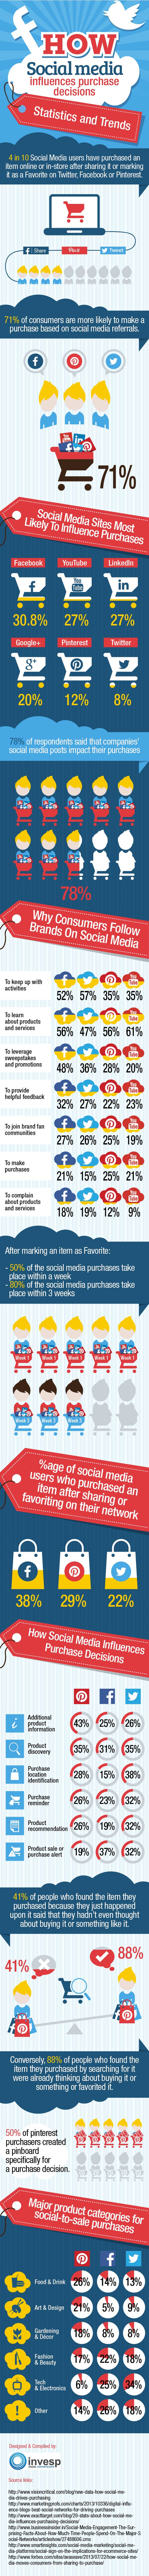 How Social Media Influences Purchase Decisions – Statistics And Trends